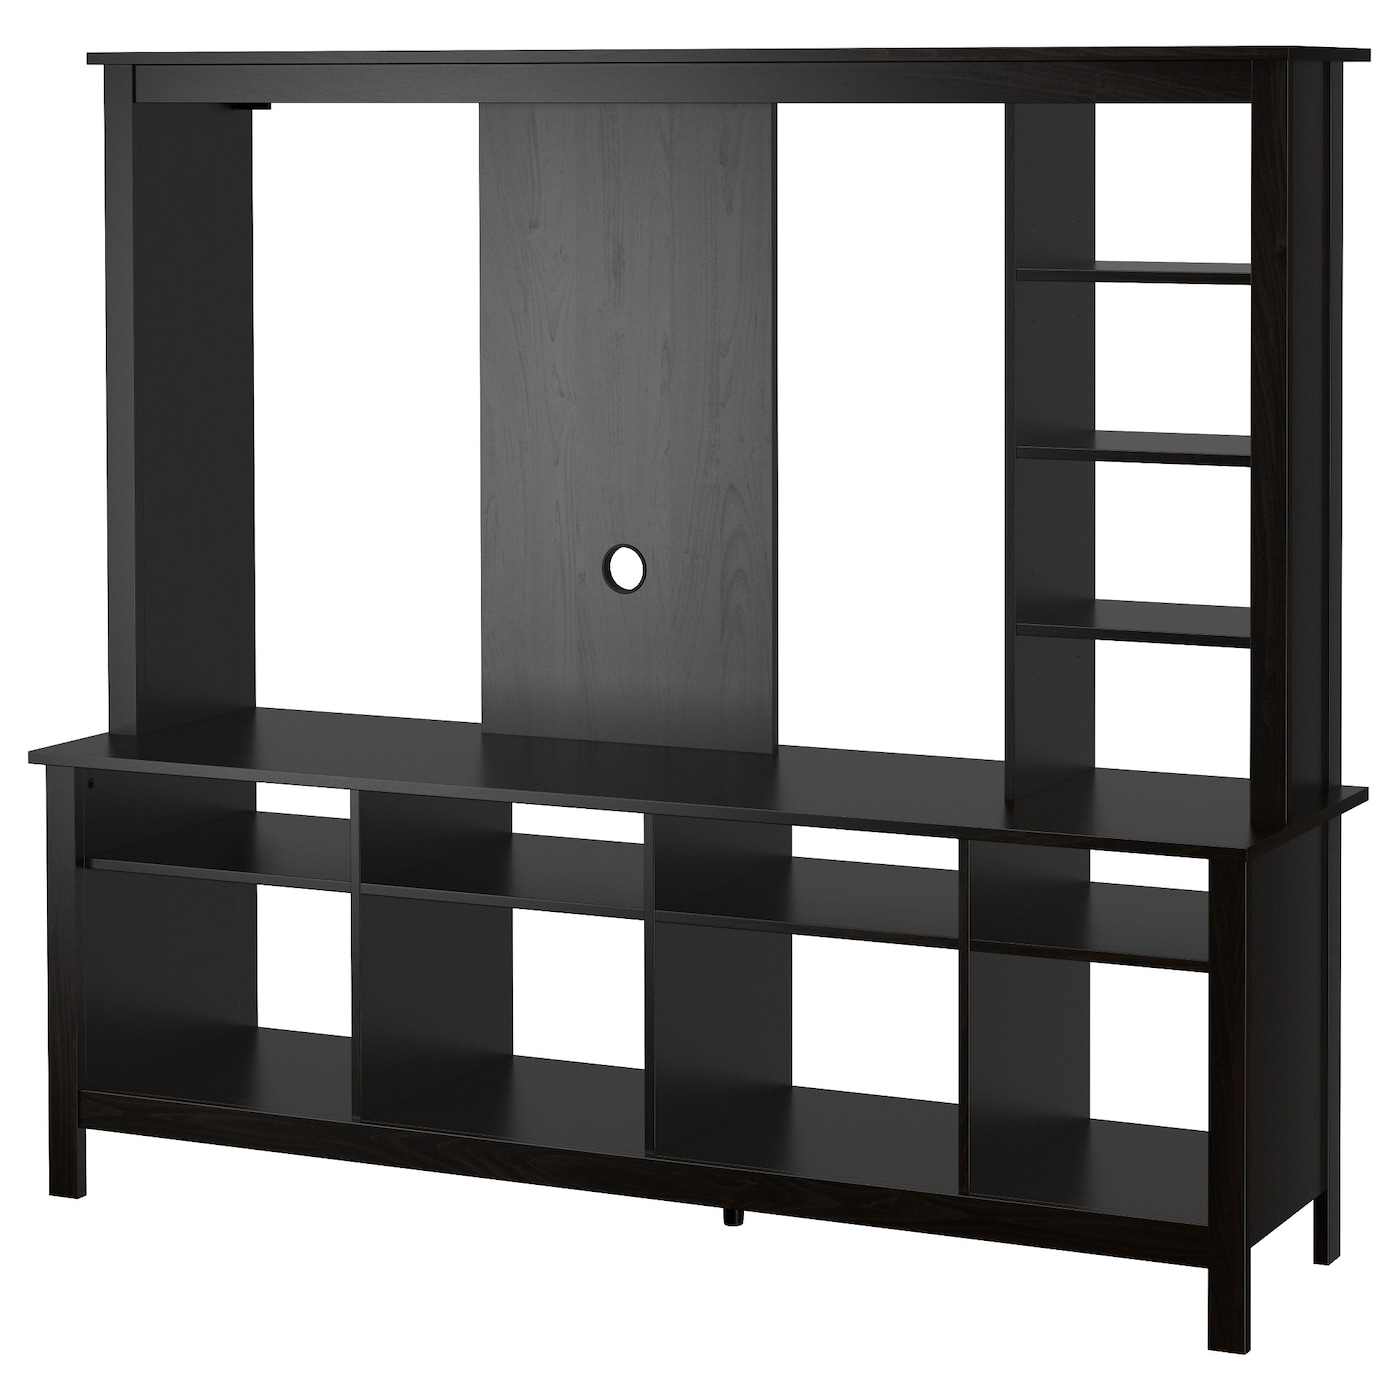 tomn s meuble tv brun noir 183x48x163 cm ikea. Black Bedroom Furniture Sets. Home Design Ideas